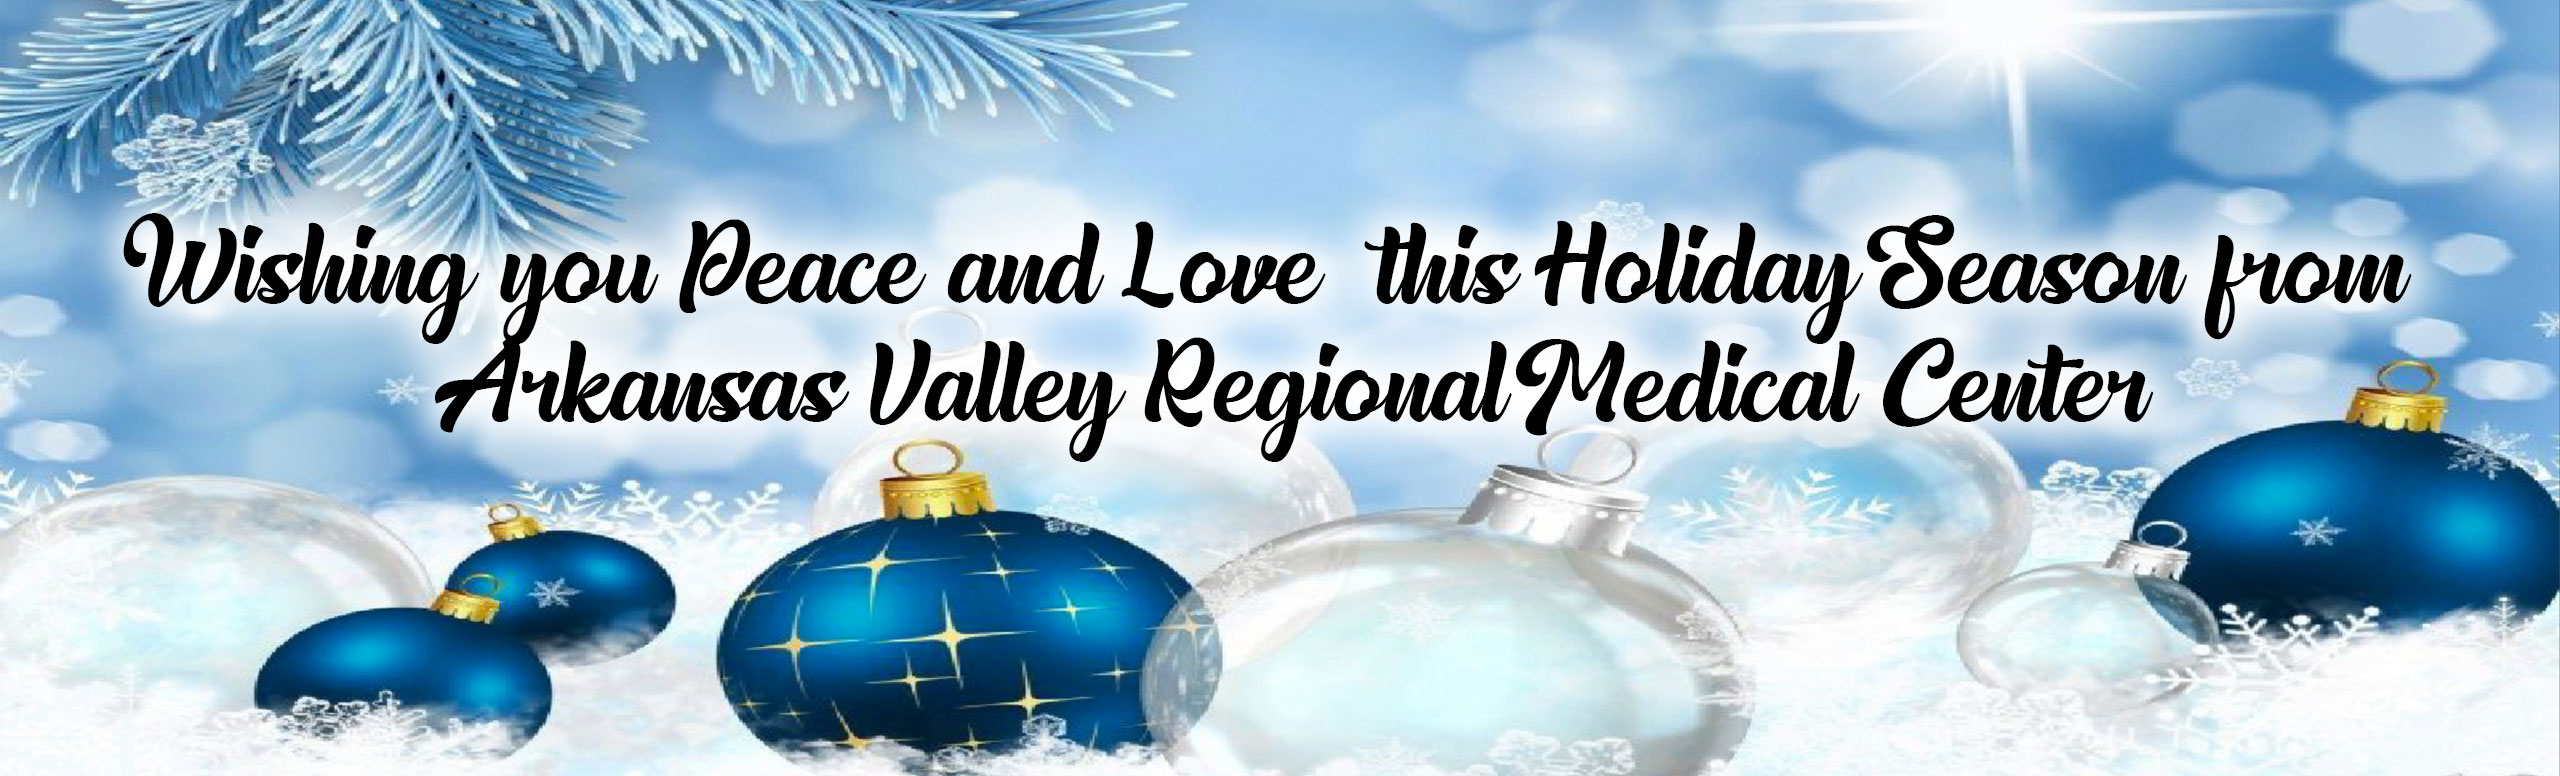 Wishing you peace and love this holiday season from Arkansas Valley Regional Medical Center